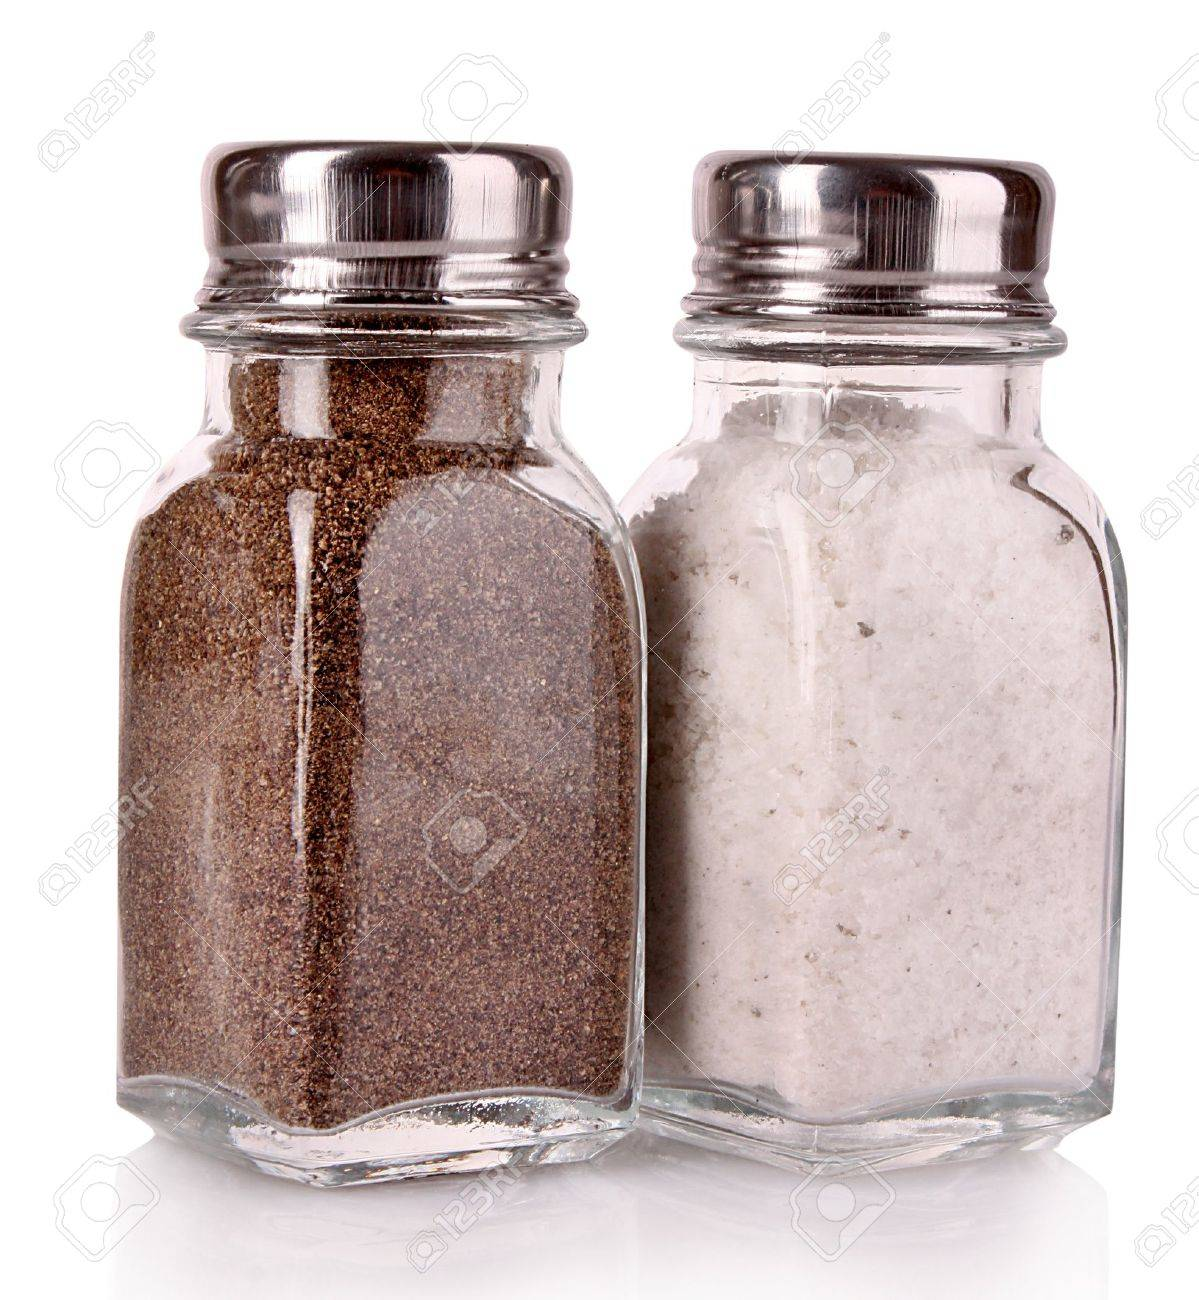 salt and pepper shaker on a white background stock photo picture  - salt and pepper shaker on a white background stock photo